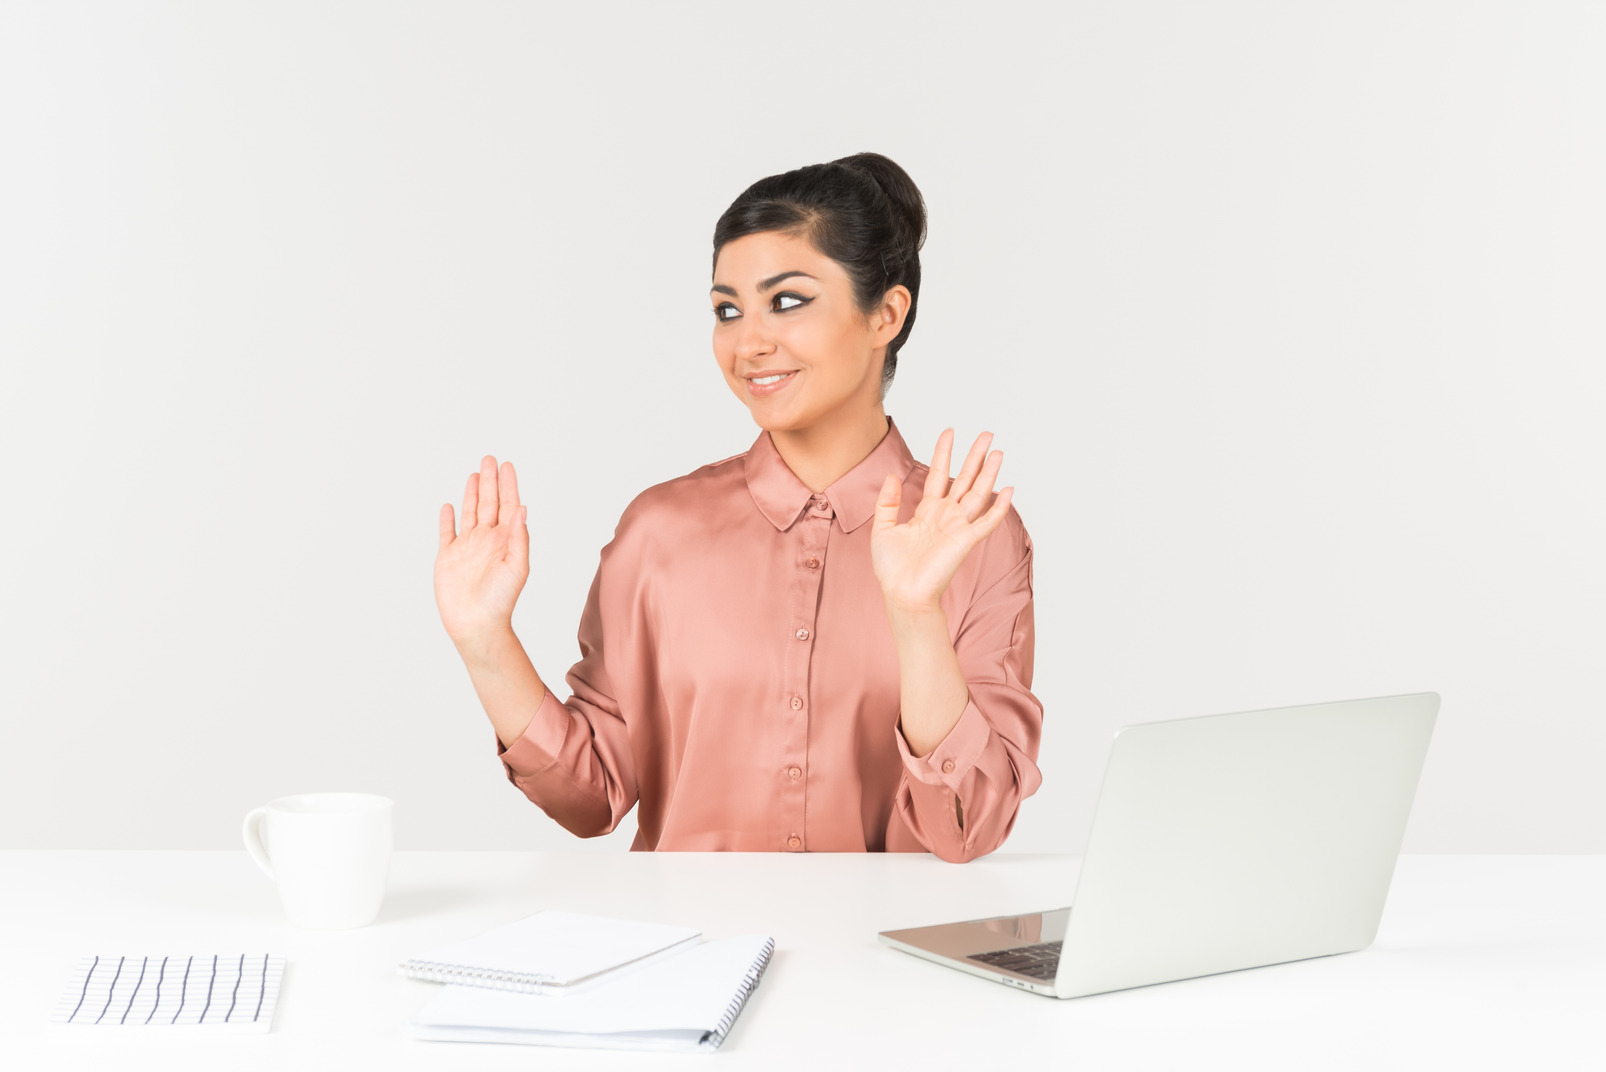 Young indian female office worker sitting at office desk with hands up